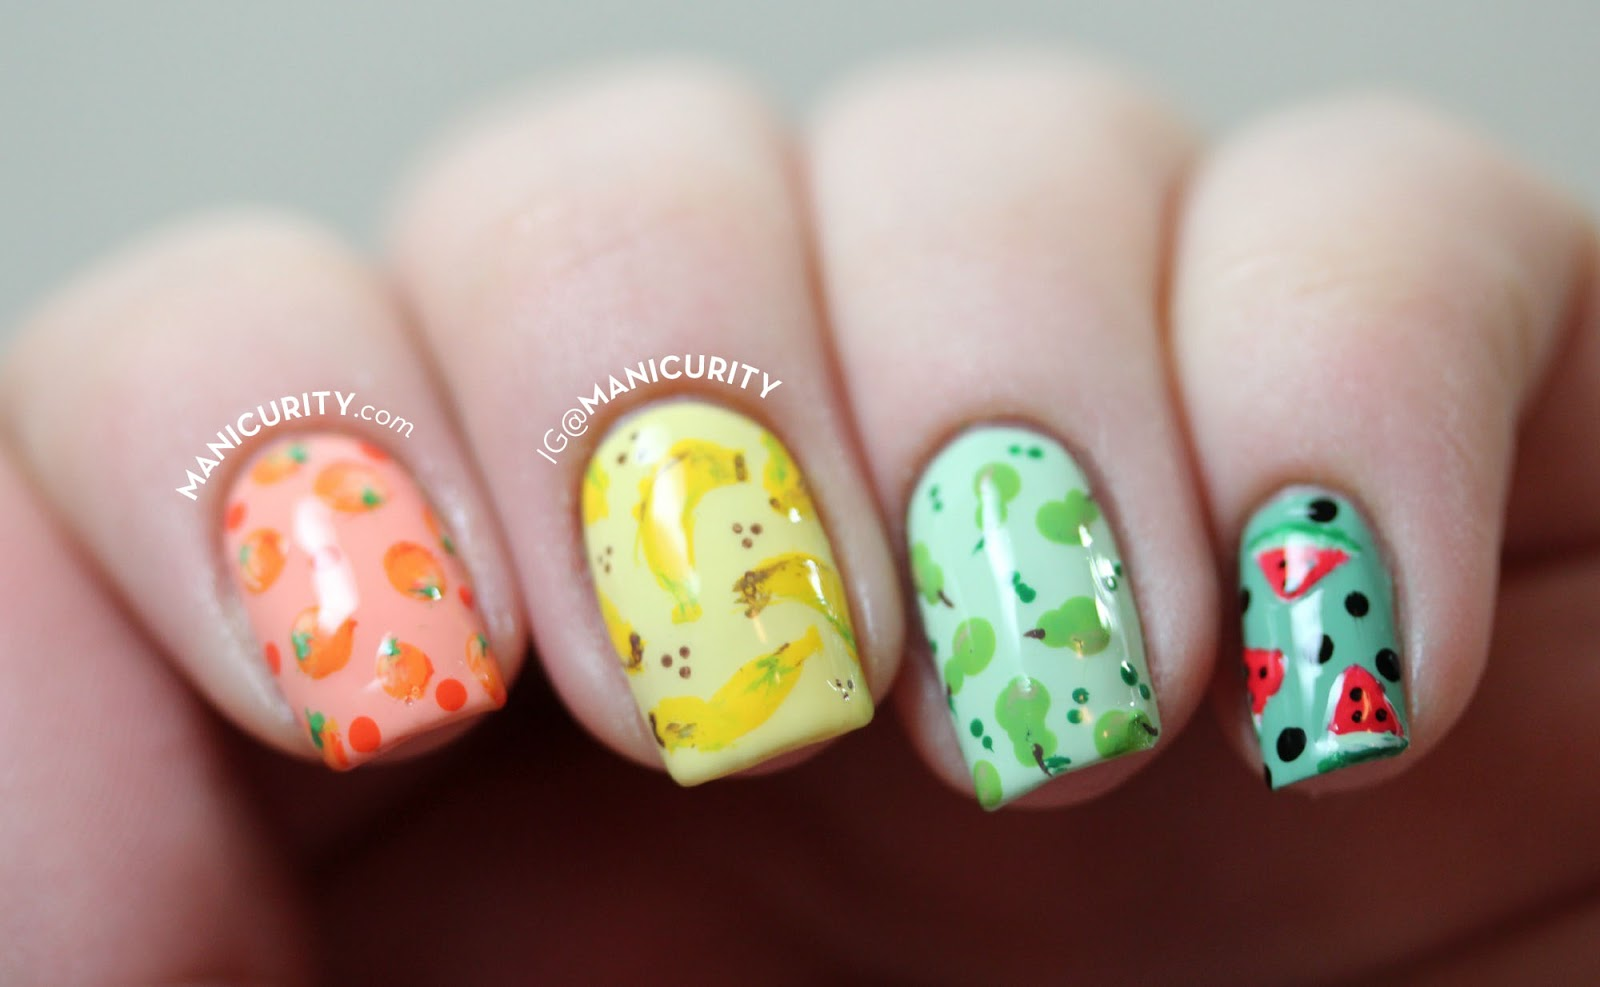 The Digit-al Dozen: Freehand Fruit Salad Skittle Set o' Nail Art - miniature fruit nails | Manicurity.com